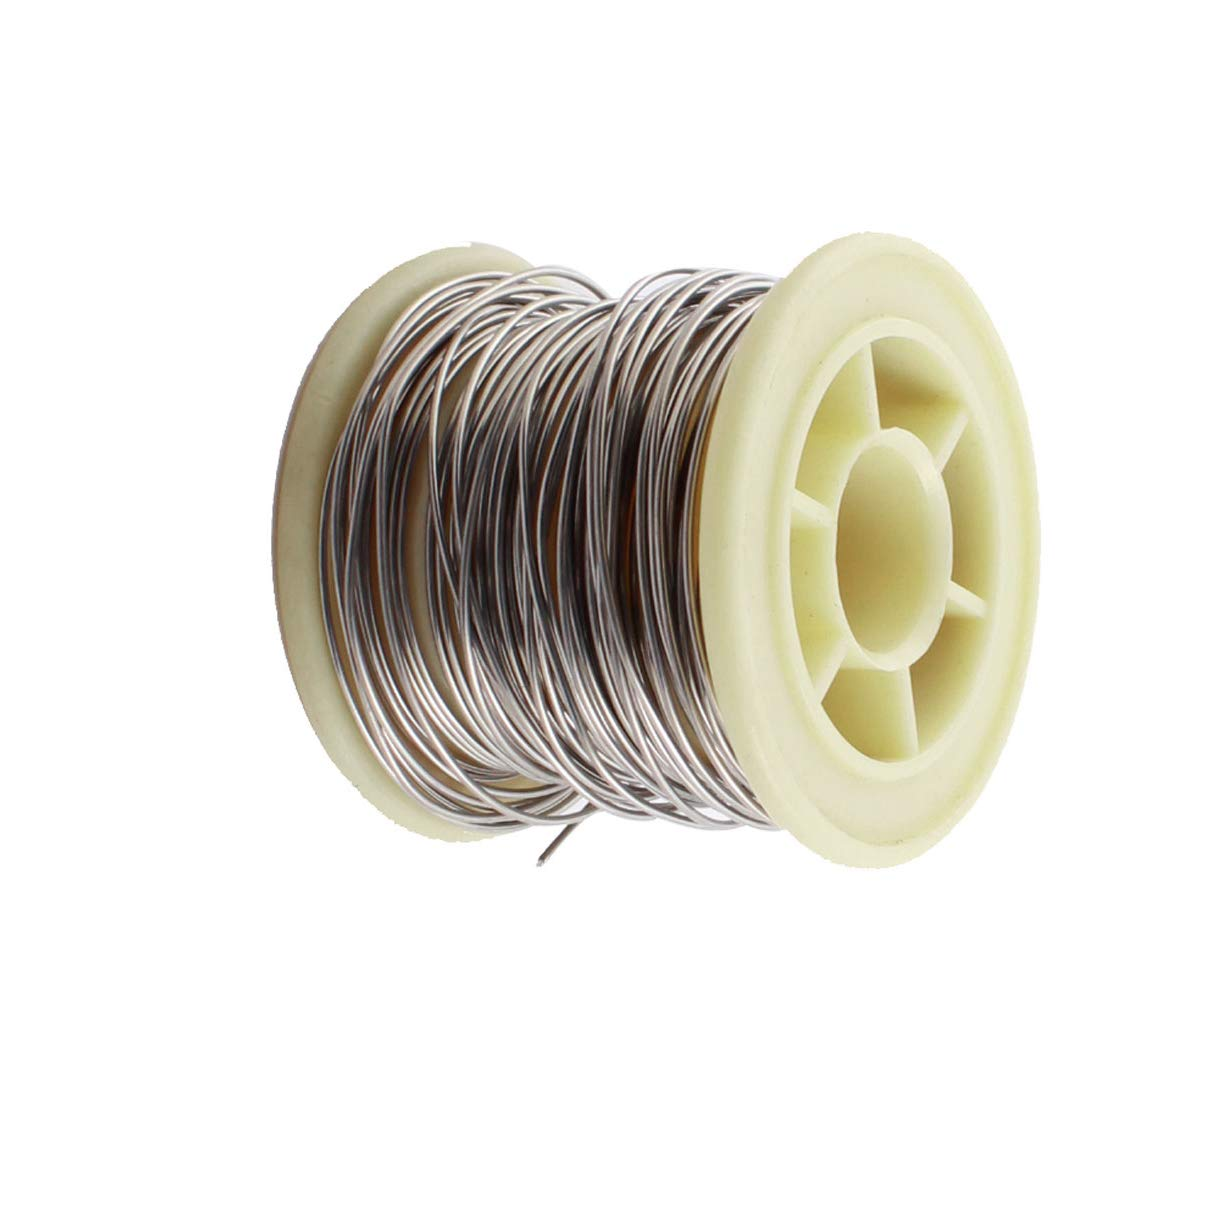 Aexit 7.5Meter 0.9mm Water Heater Parts AWG19 1.713 Ohm/M Nichrome Resistor Heating Elements Resistance Wire